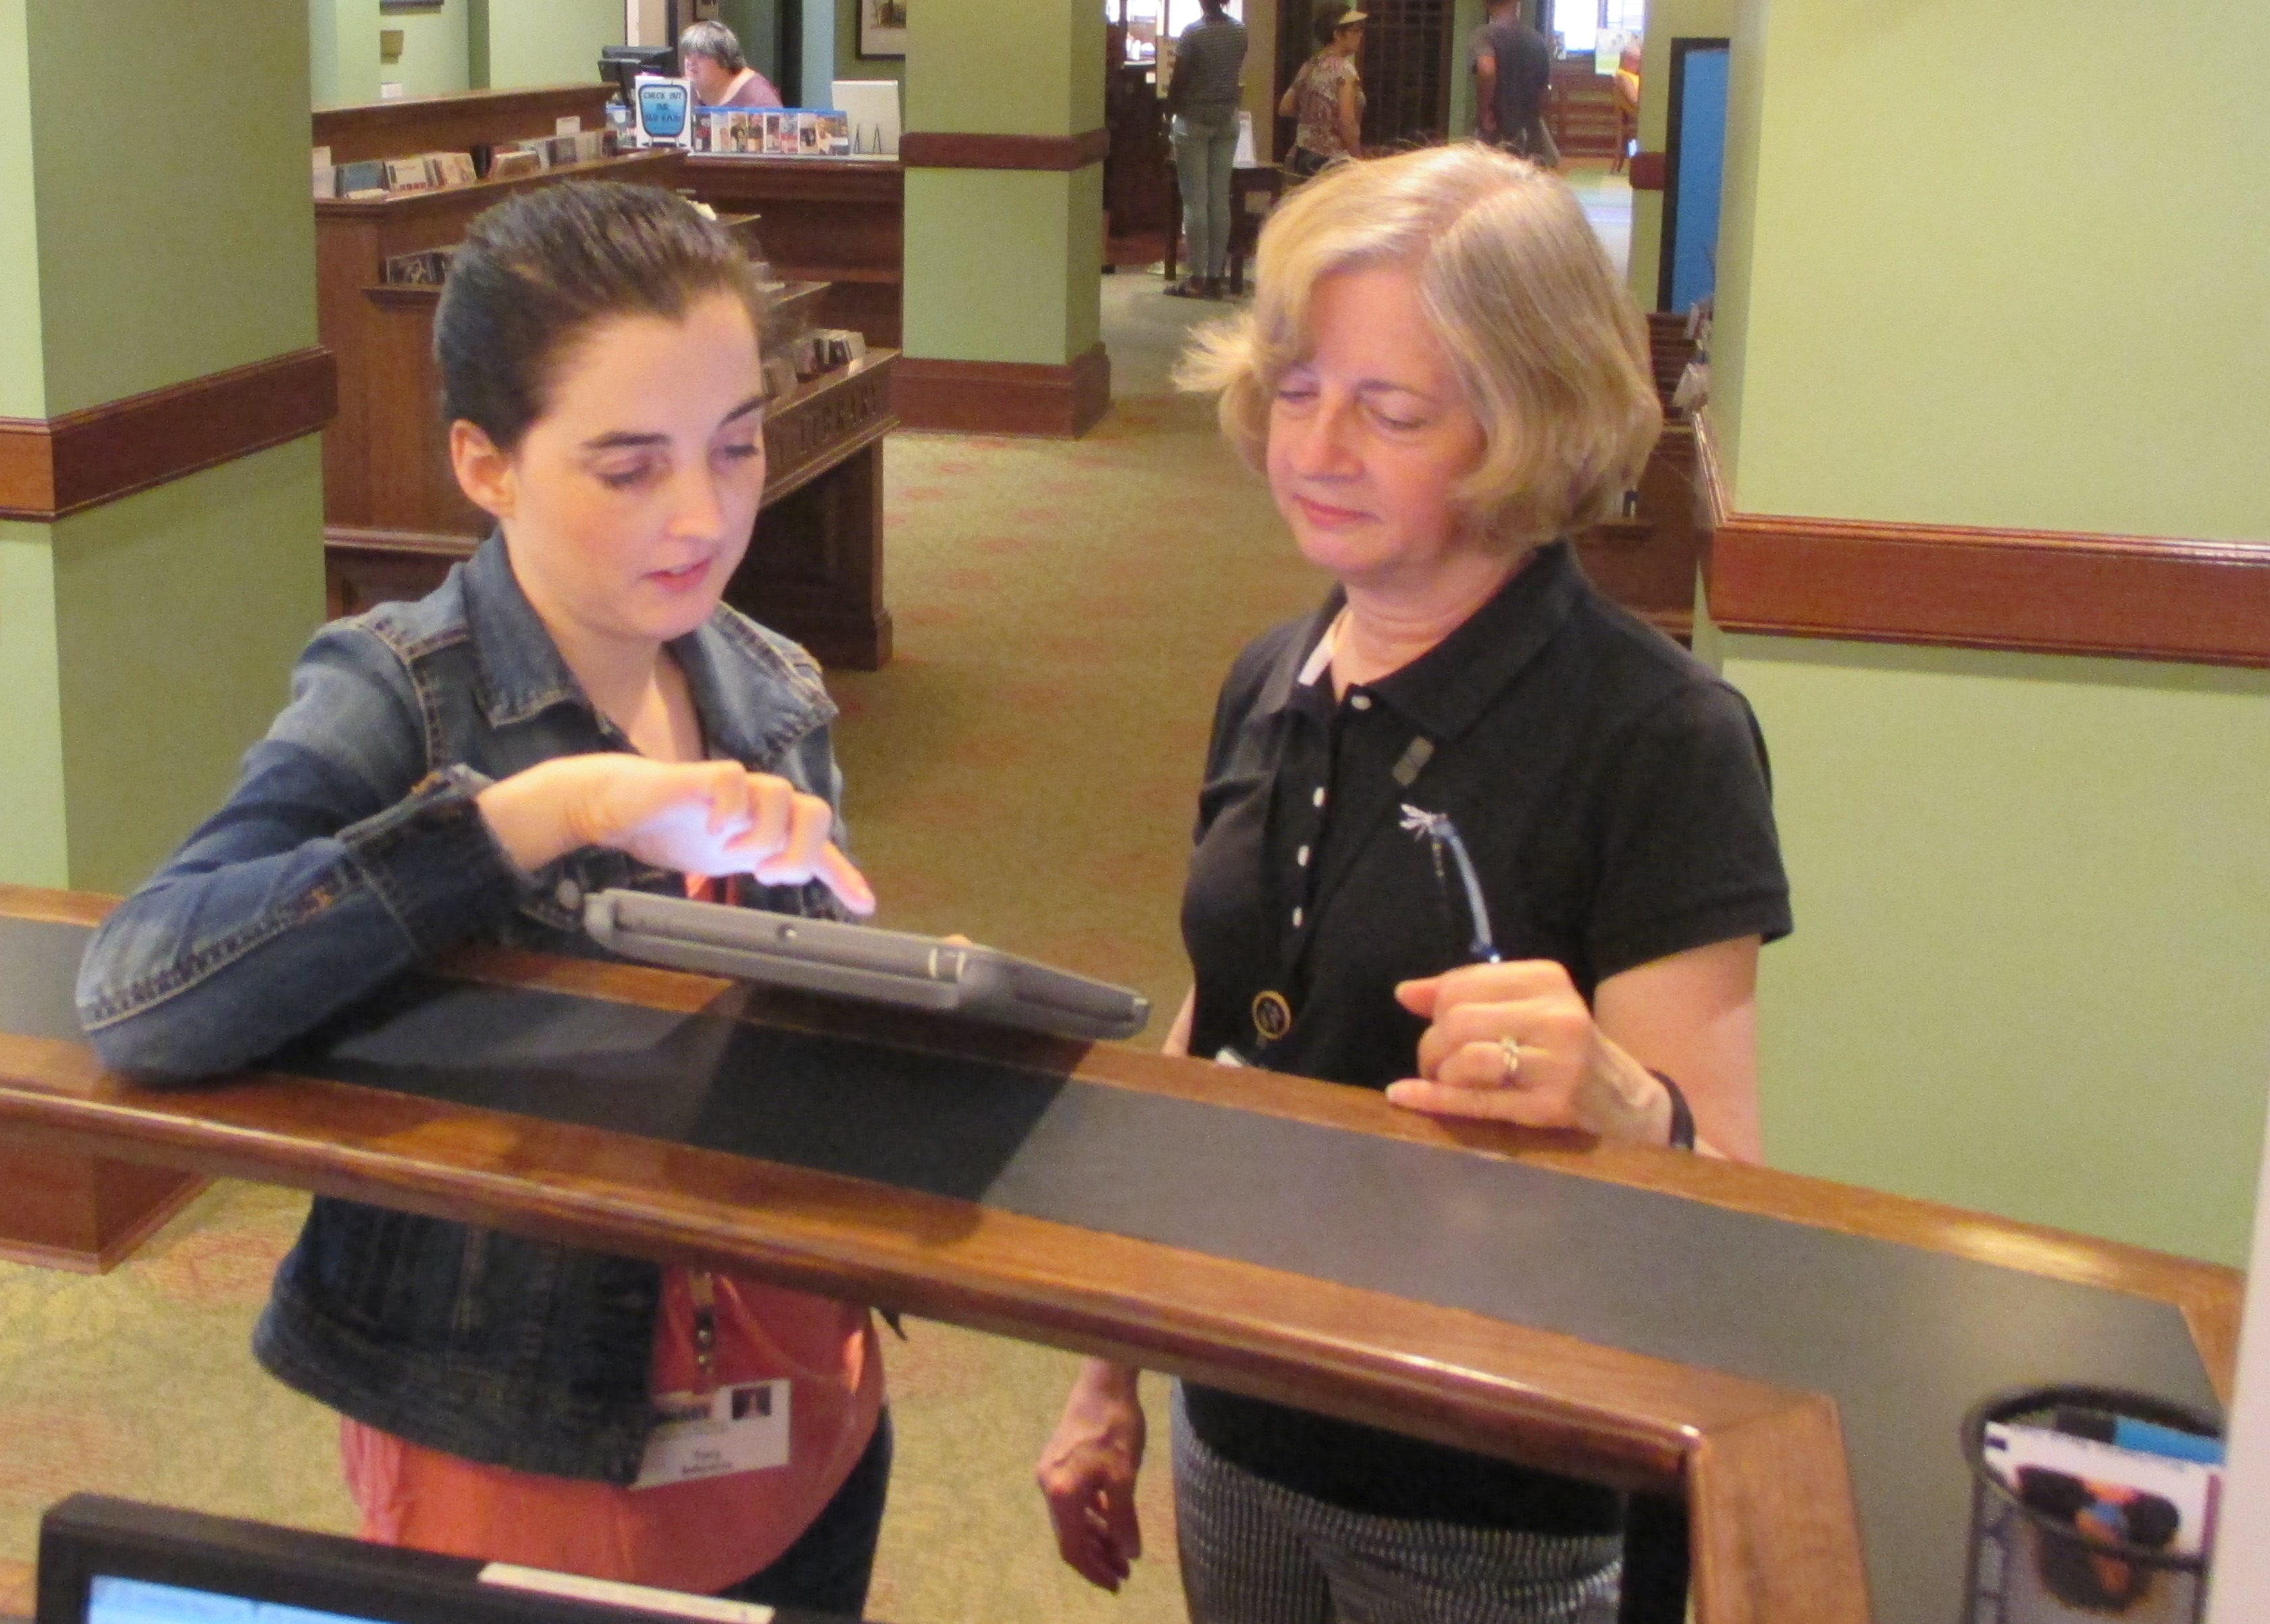 Workshop: Check Out Library Books on Your Apple Device